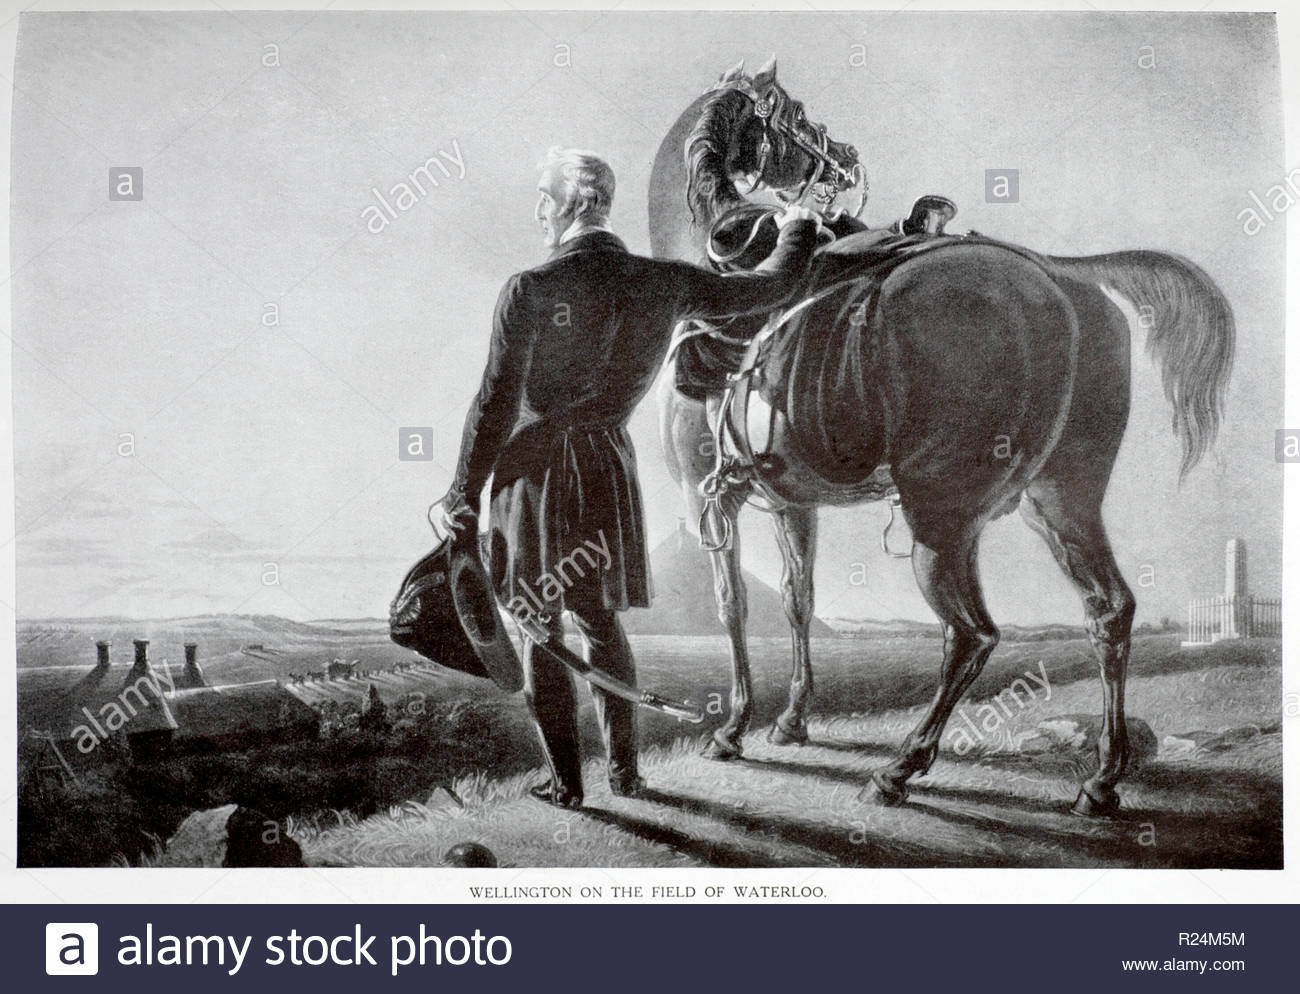 Arthur Wellesley, 1st Duke of Wellington on a visit to the field of Waterloo in 1830, illustration from 1922 - Stock Image